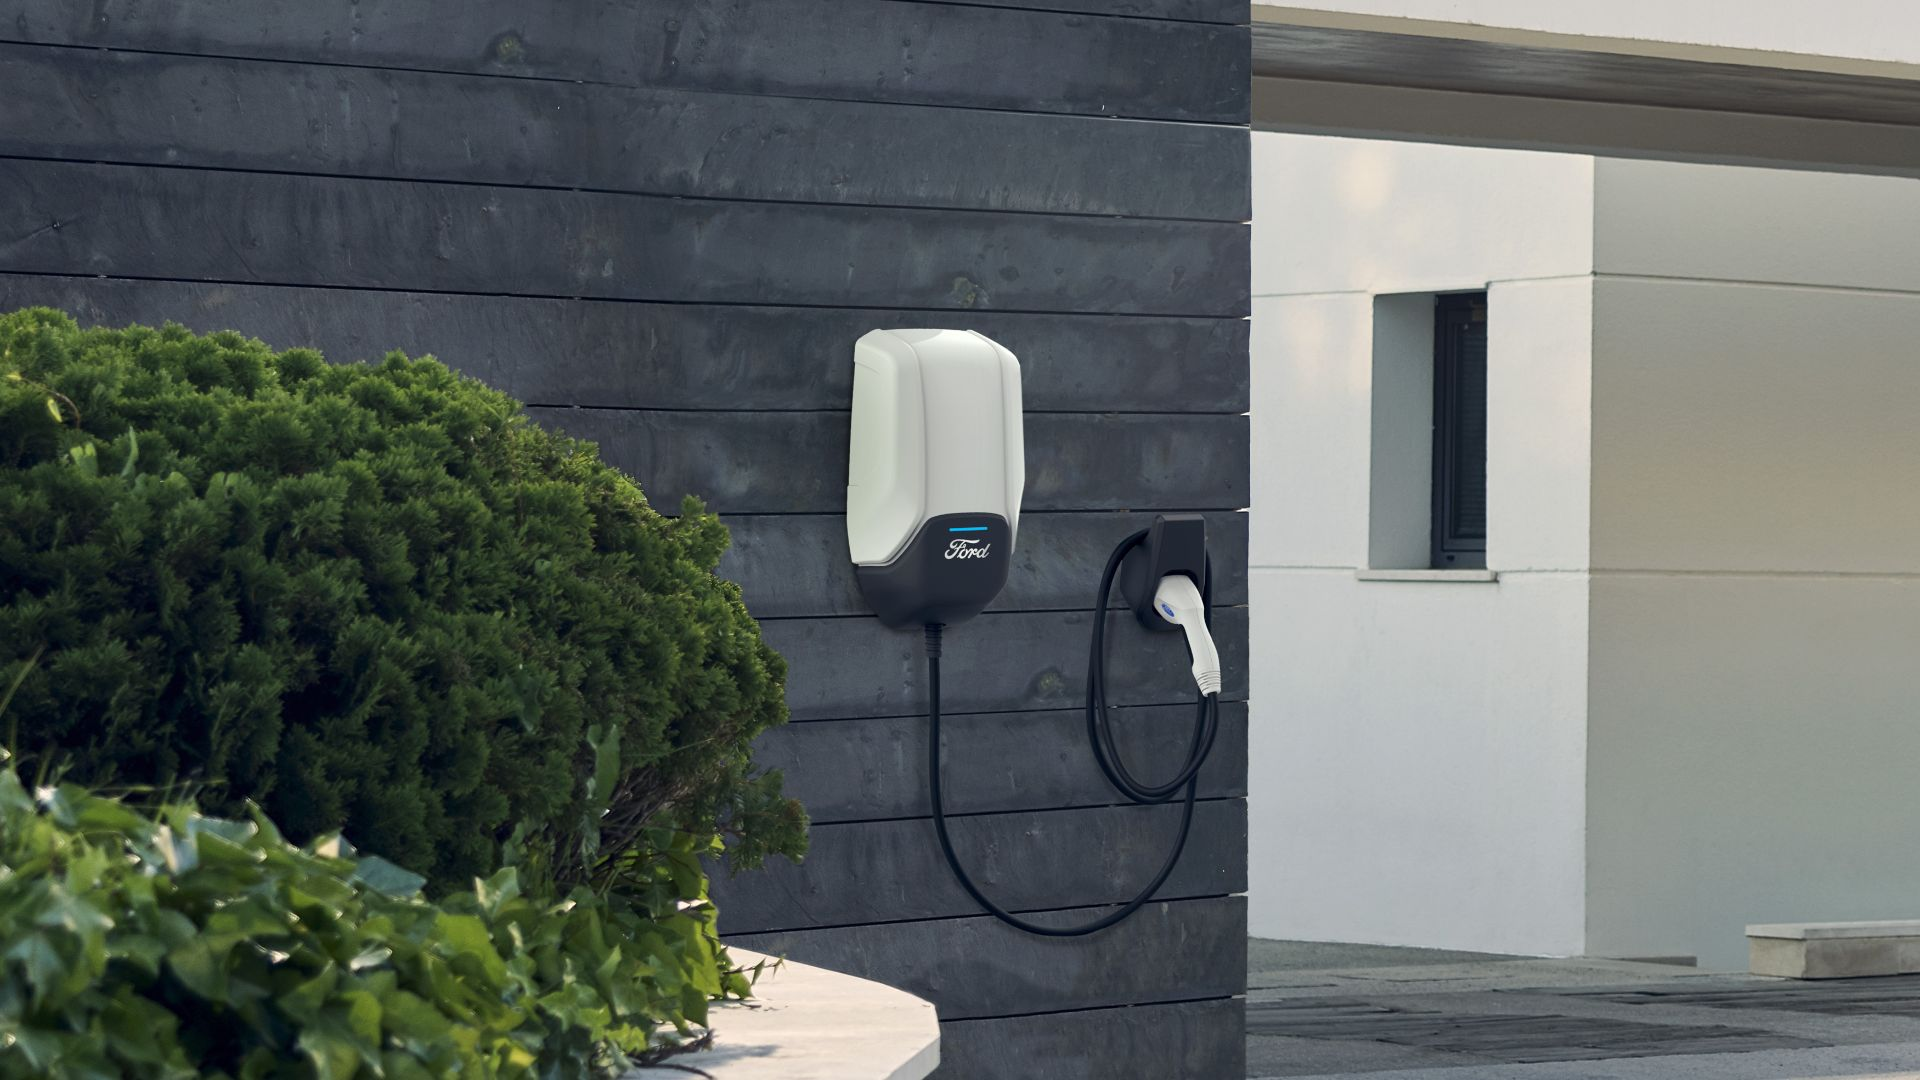 Ford launches 'Charging Solutions' system for electric cars